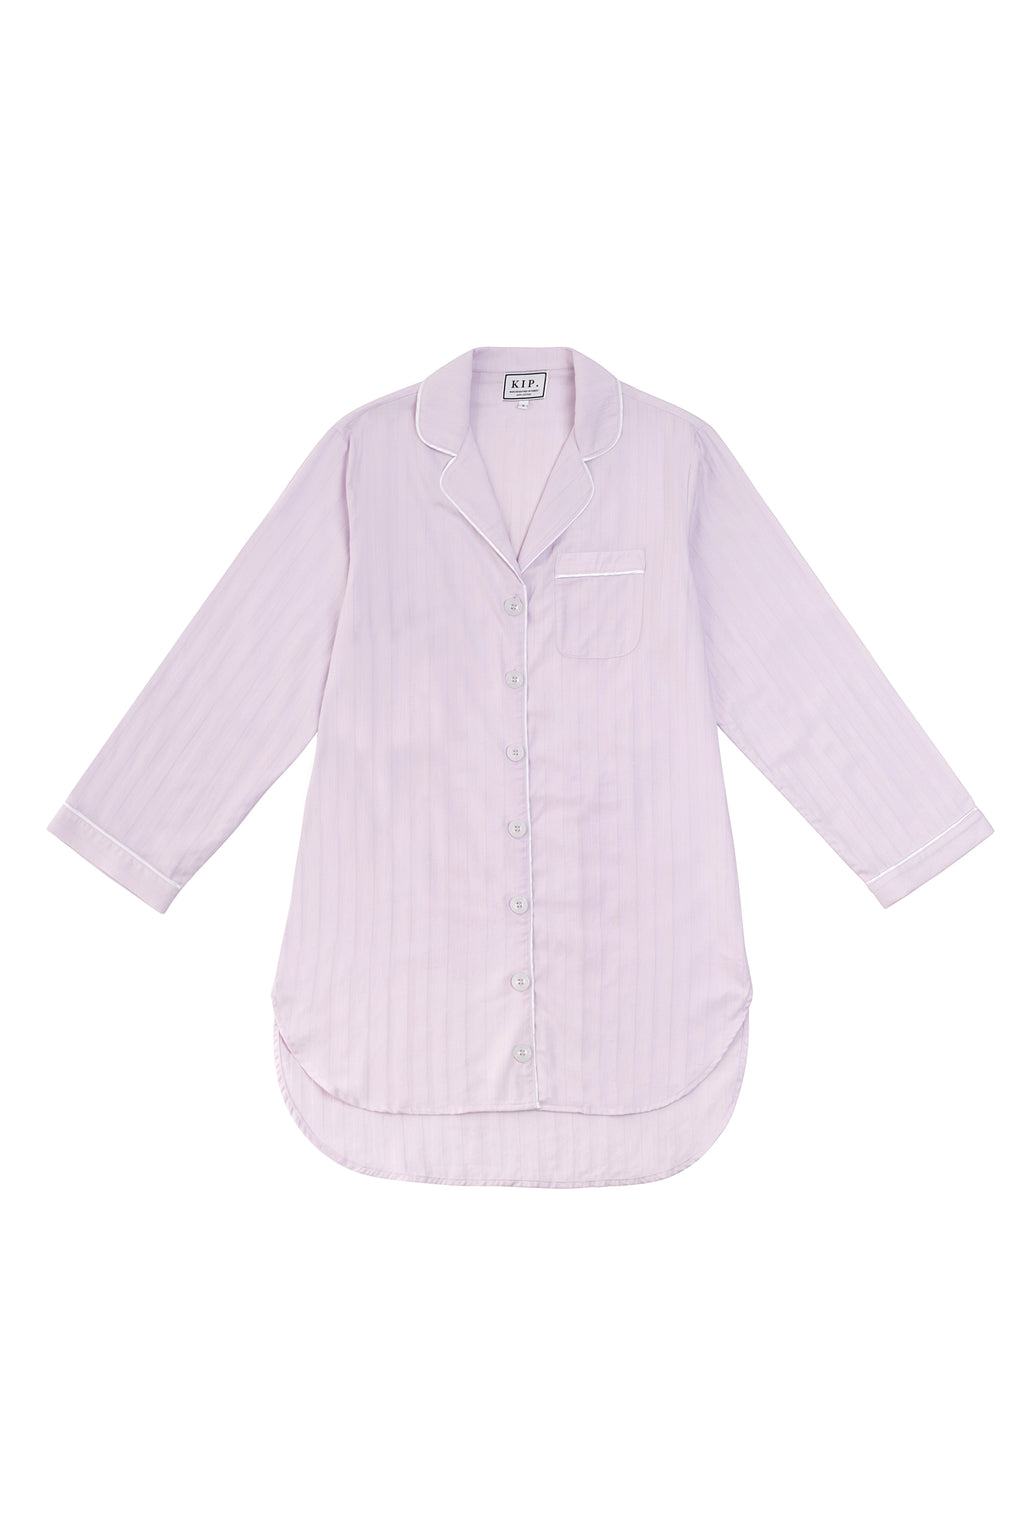 Premium Cotton Nightshirt in Lavender